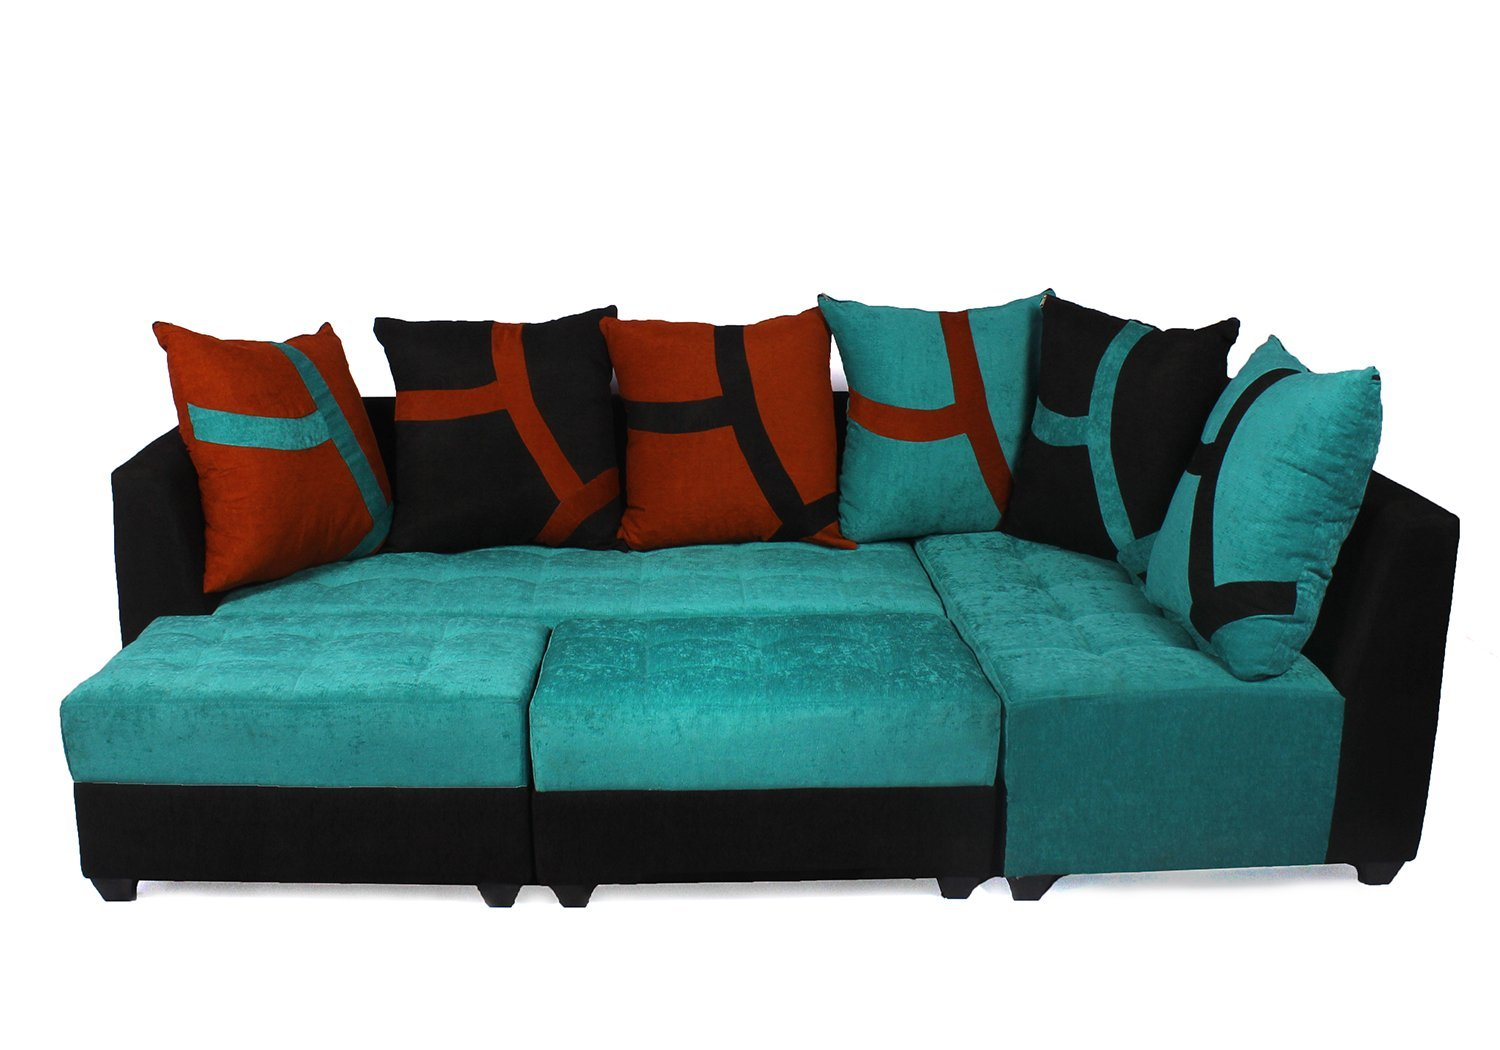 Guarented Upholstered L-Shape 5 Seater Sofa Cum Bed (3+D+2P) Sofa Set | Multiple Colors Available